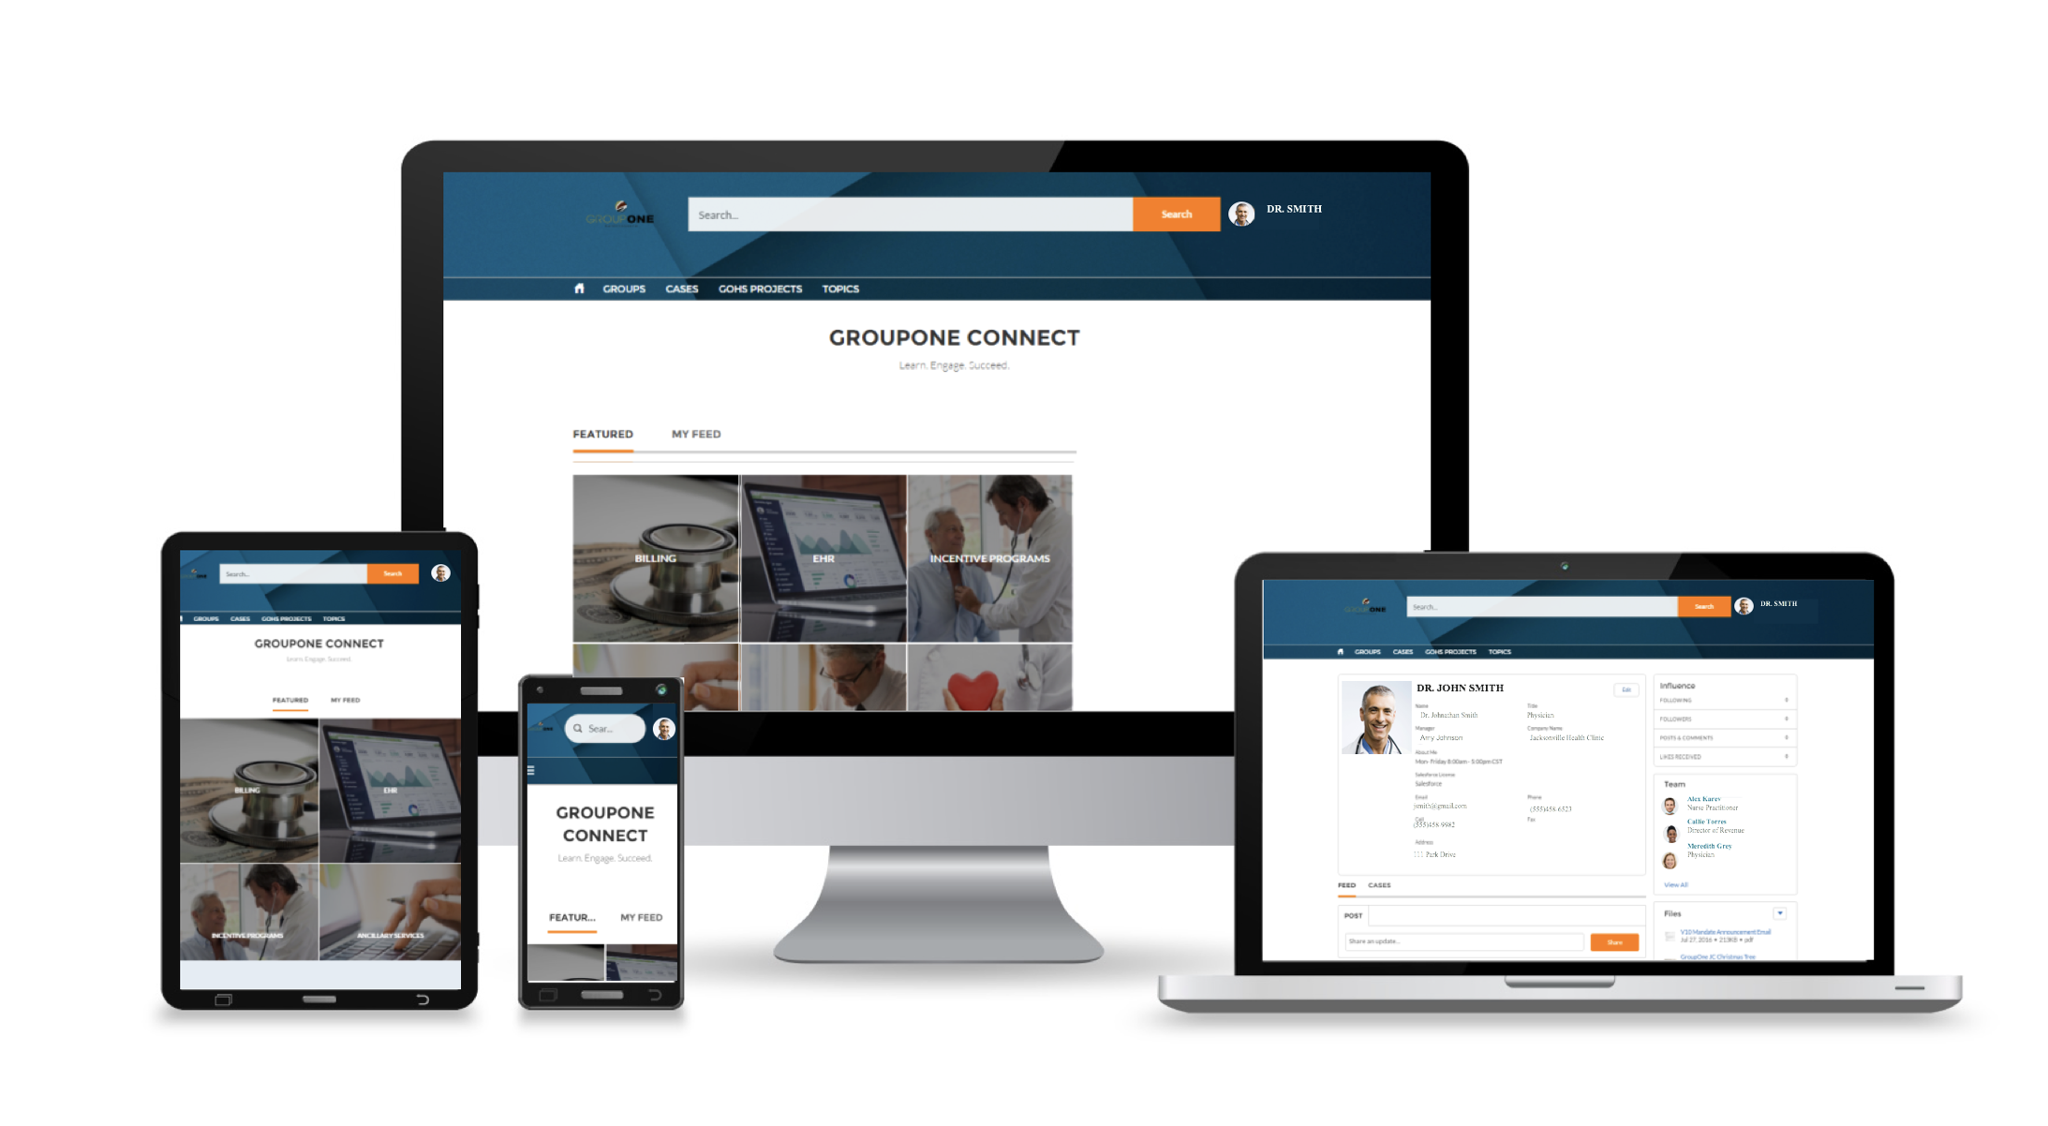 GroupOne CONNECT Customer Portal